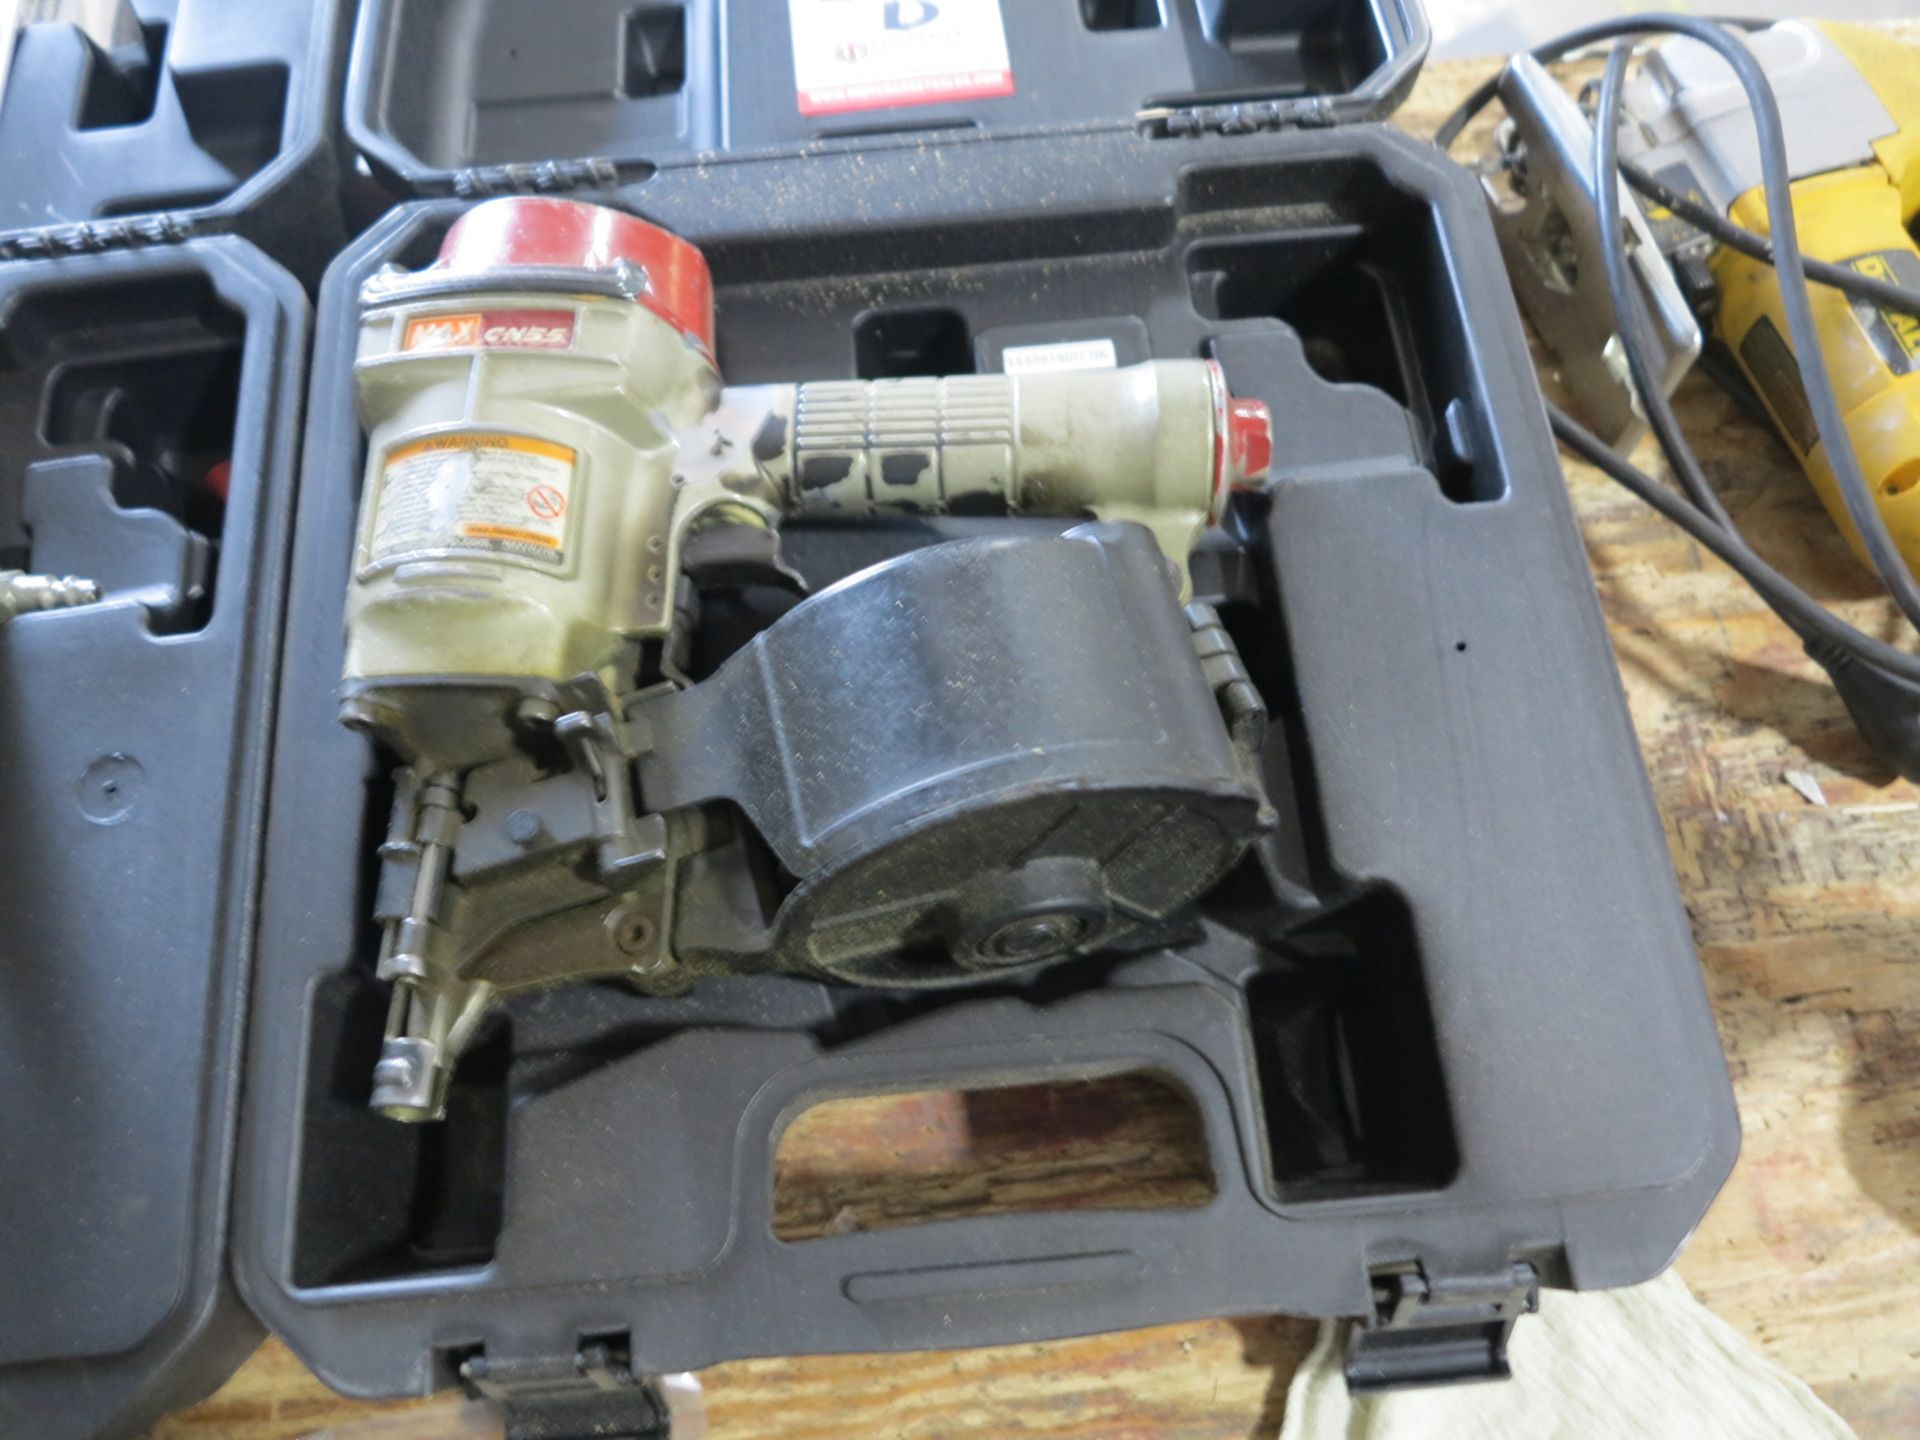 Lot 850D - MAX CN55 INDUSTRIAL COIL NAILER, W/ CASE